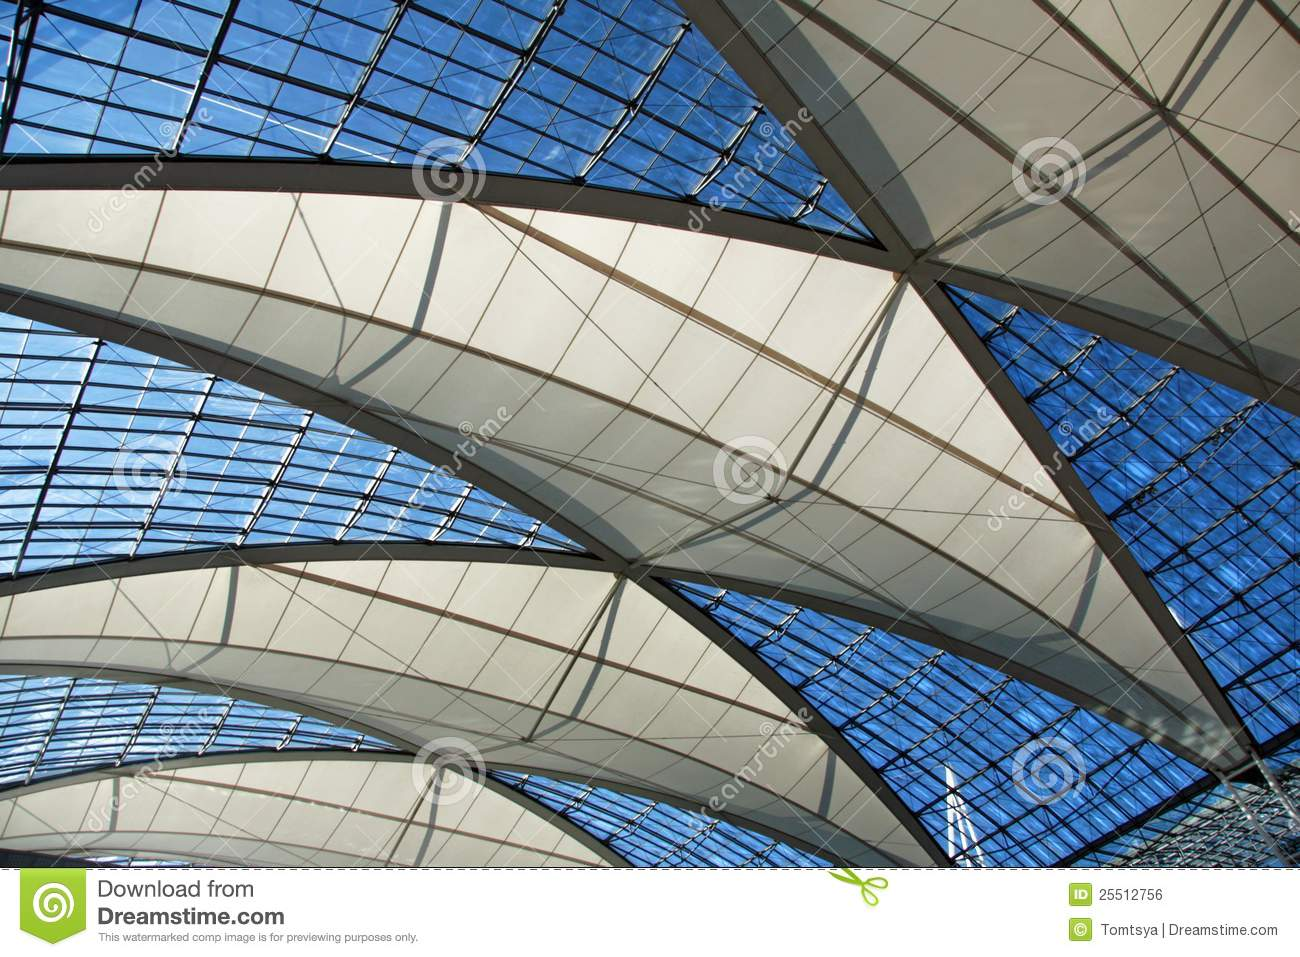 Transparent Roof Royalty Free Stock Image  Image 25512756